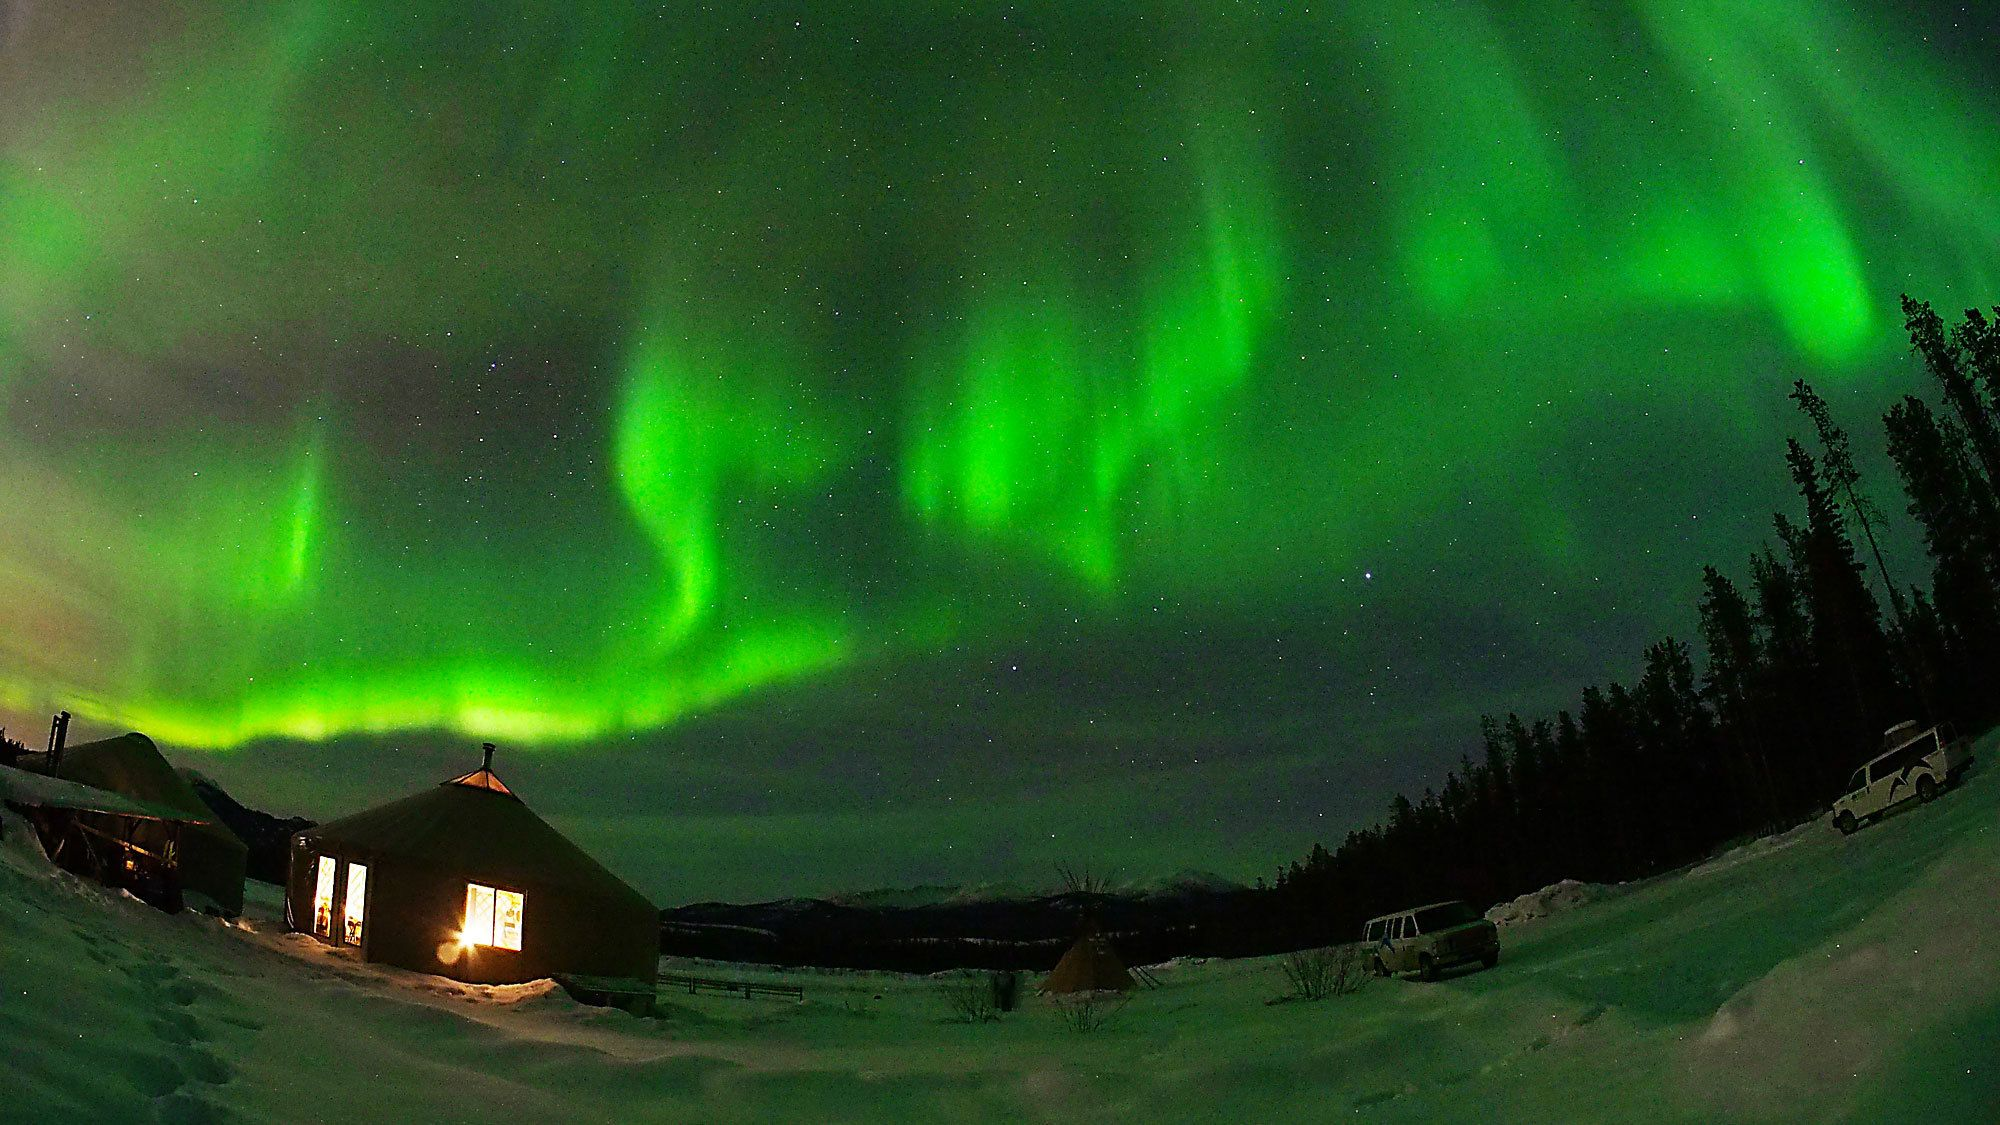 Yukon Night Sky Aurora Borealis Viewing in the Canada Territories